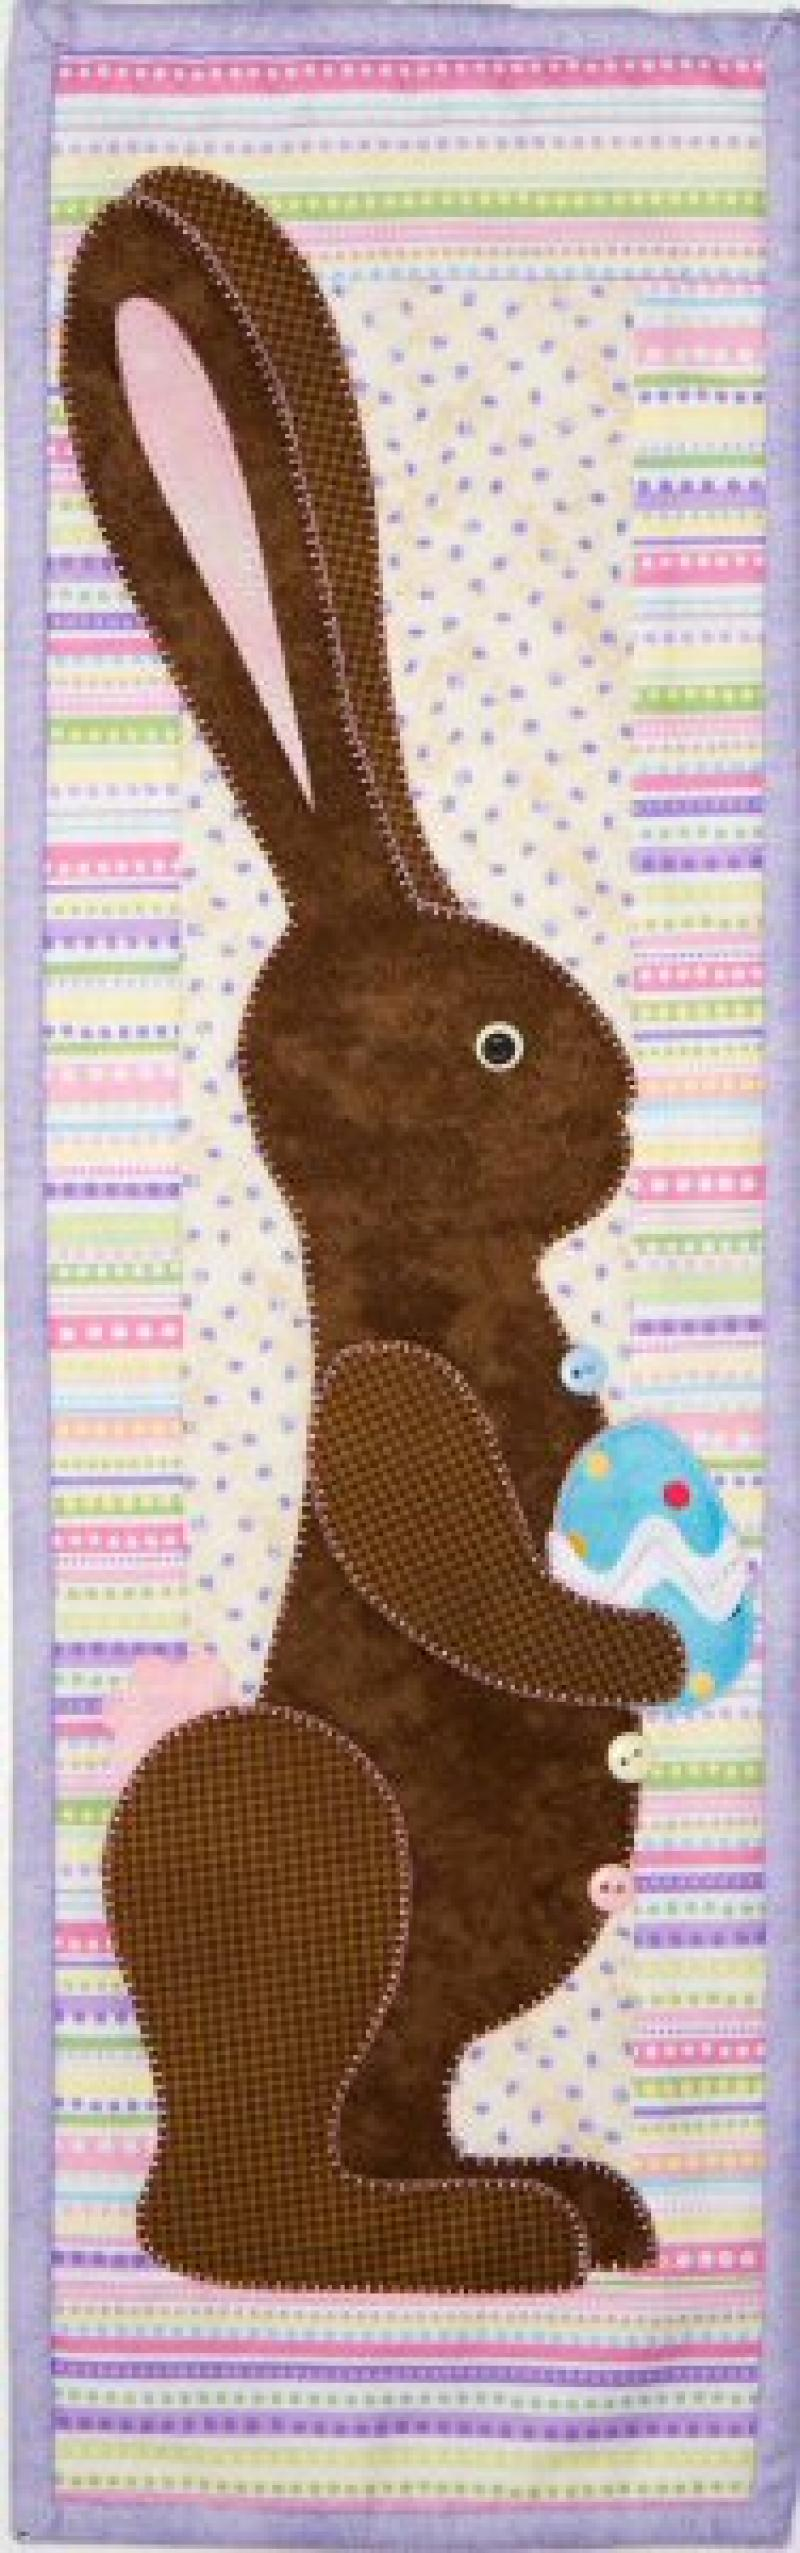 MM303 Chocolate Bunny